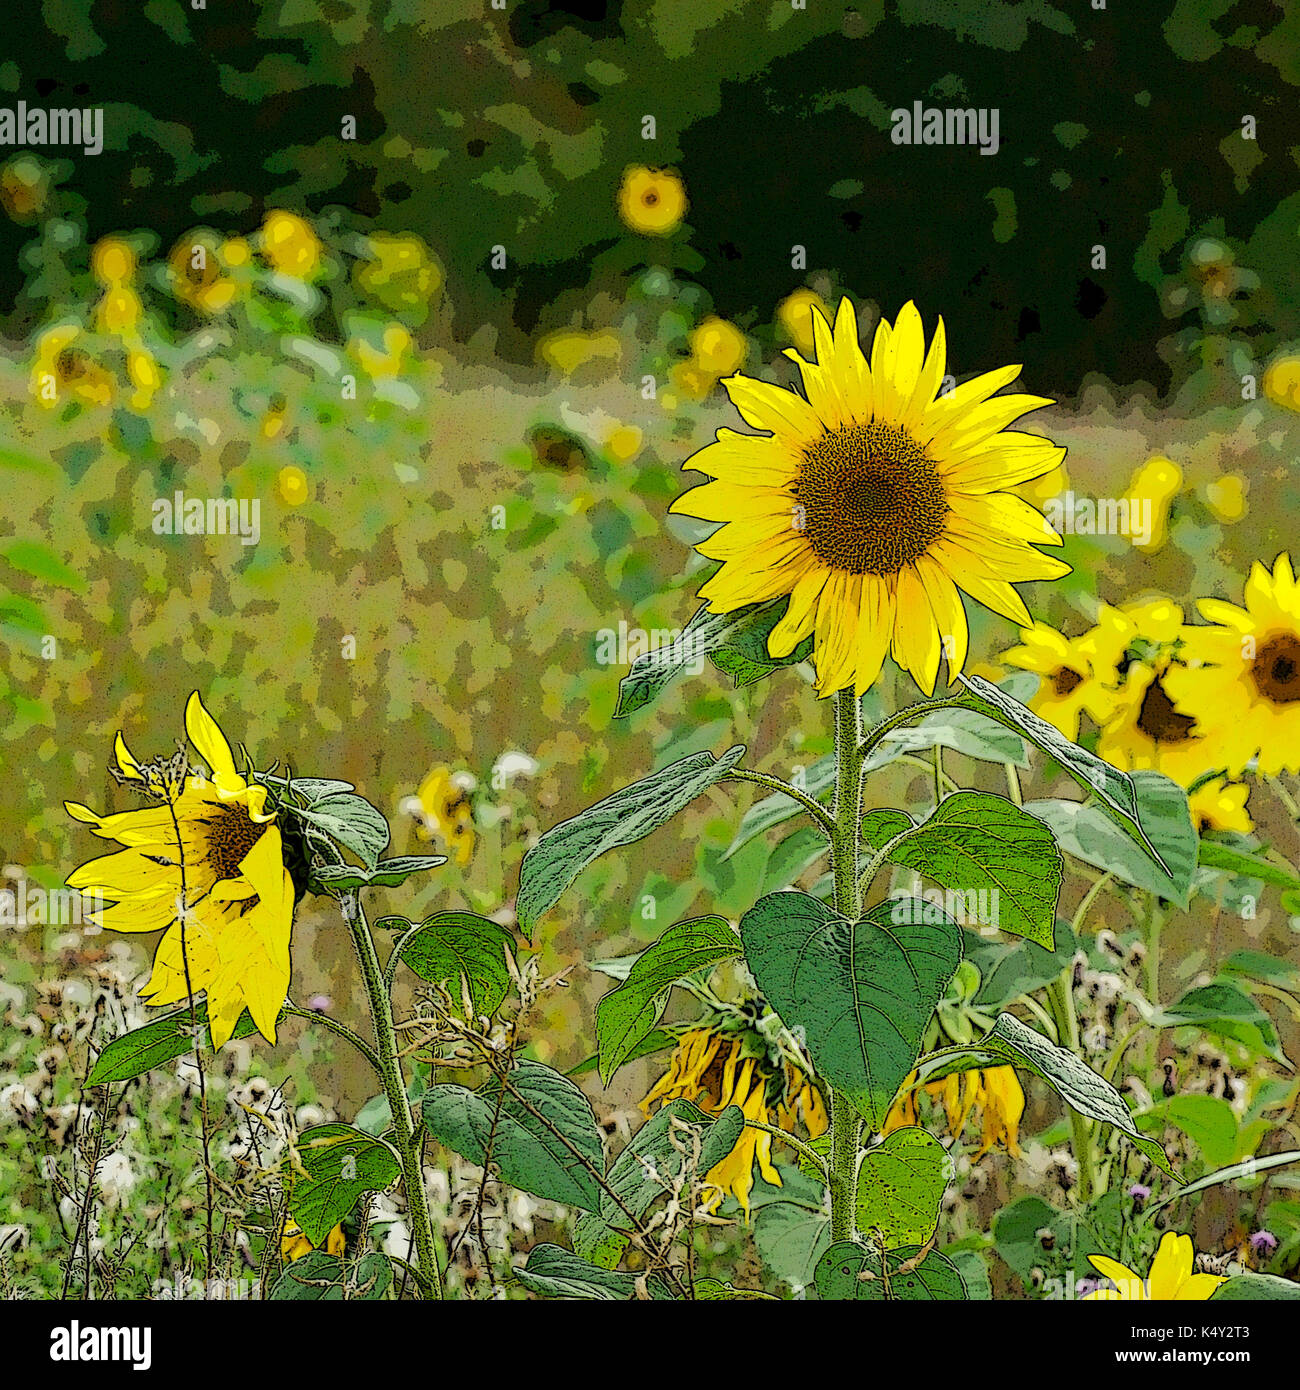 Sunflowers growing on set-aside land; with Photoshop poster edges effect. - Stock Image